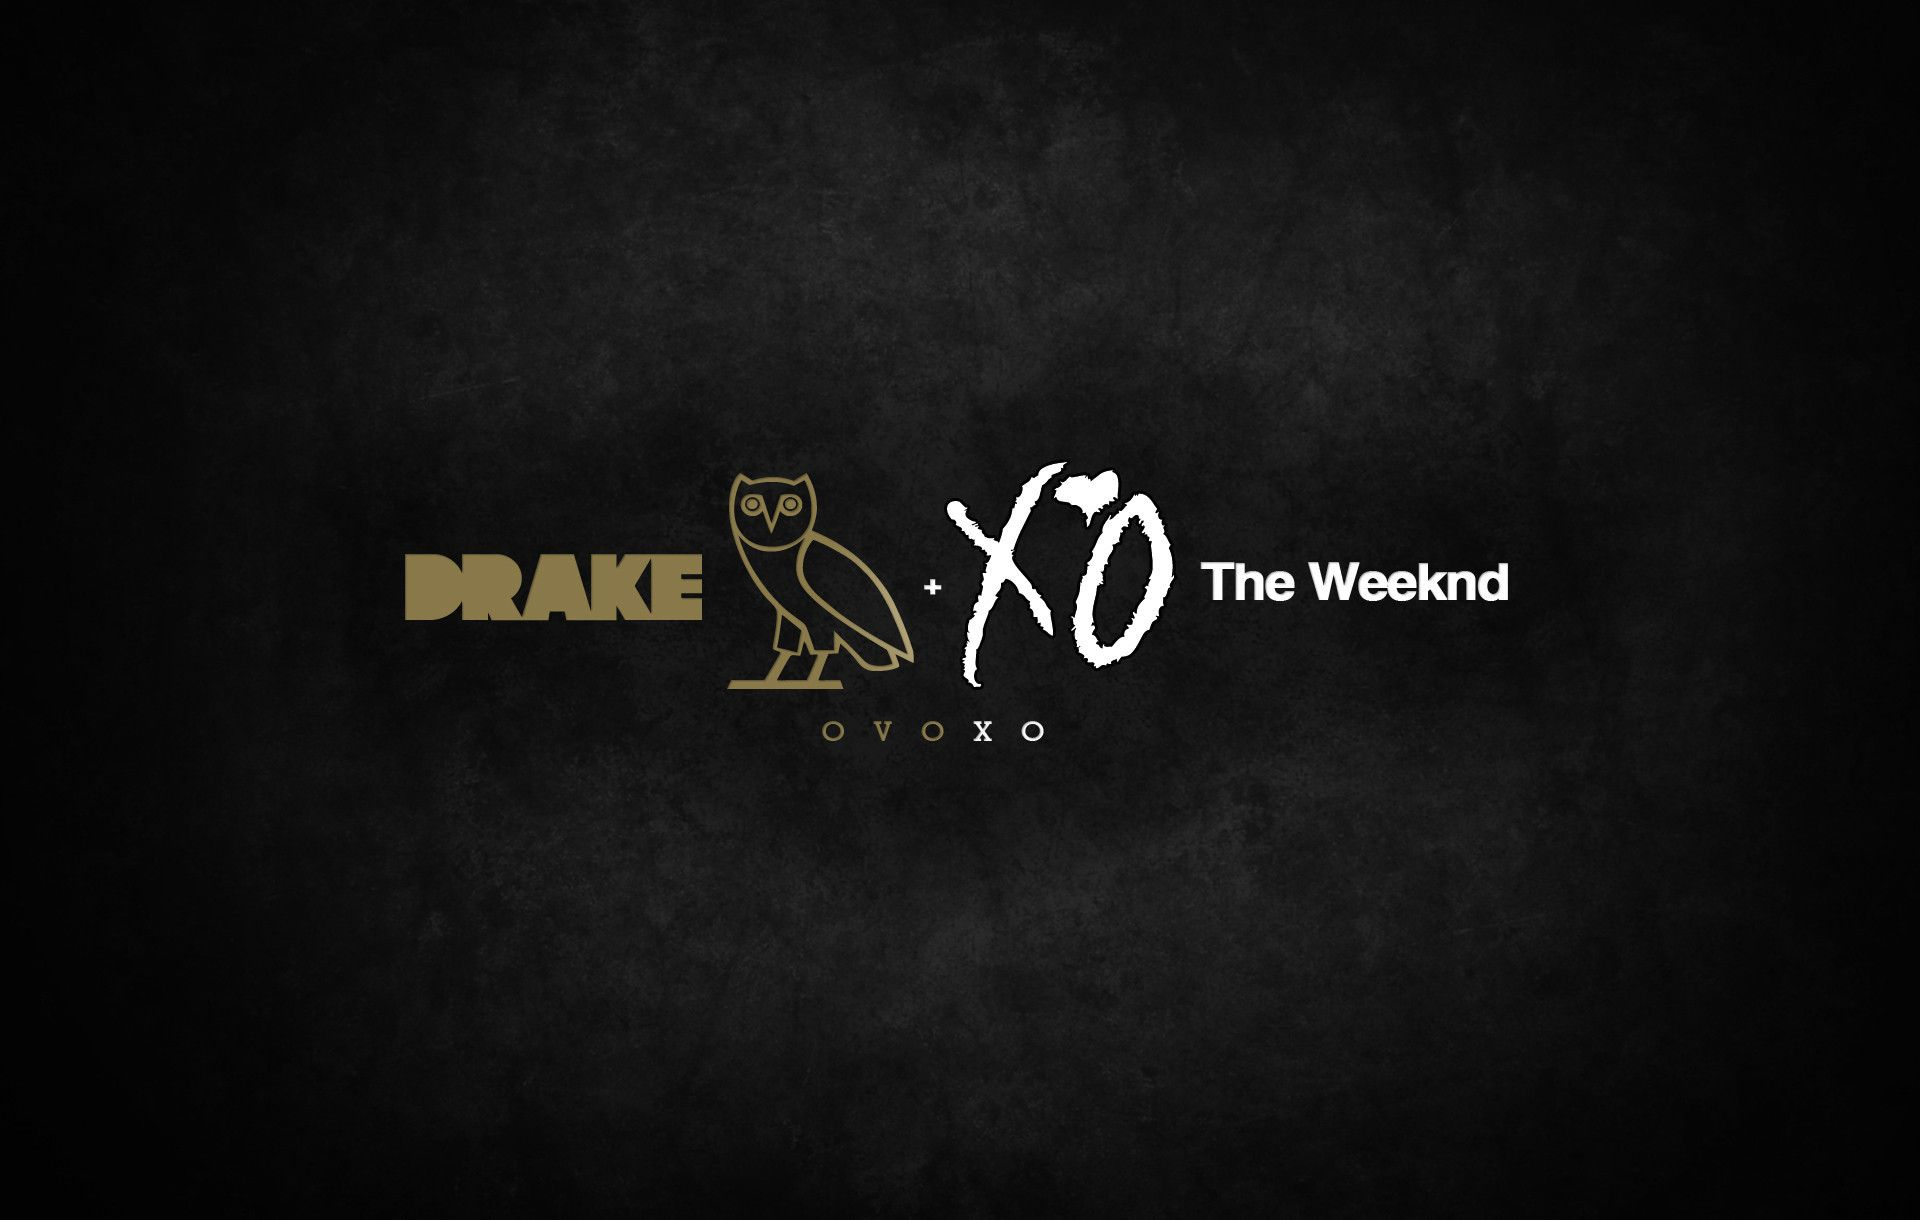 Thursday The Weeknd Wallpapers Top Free Thursday The Weeknd